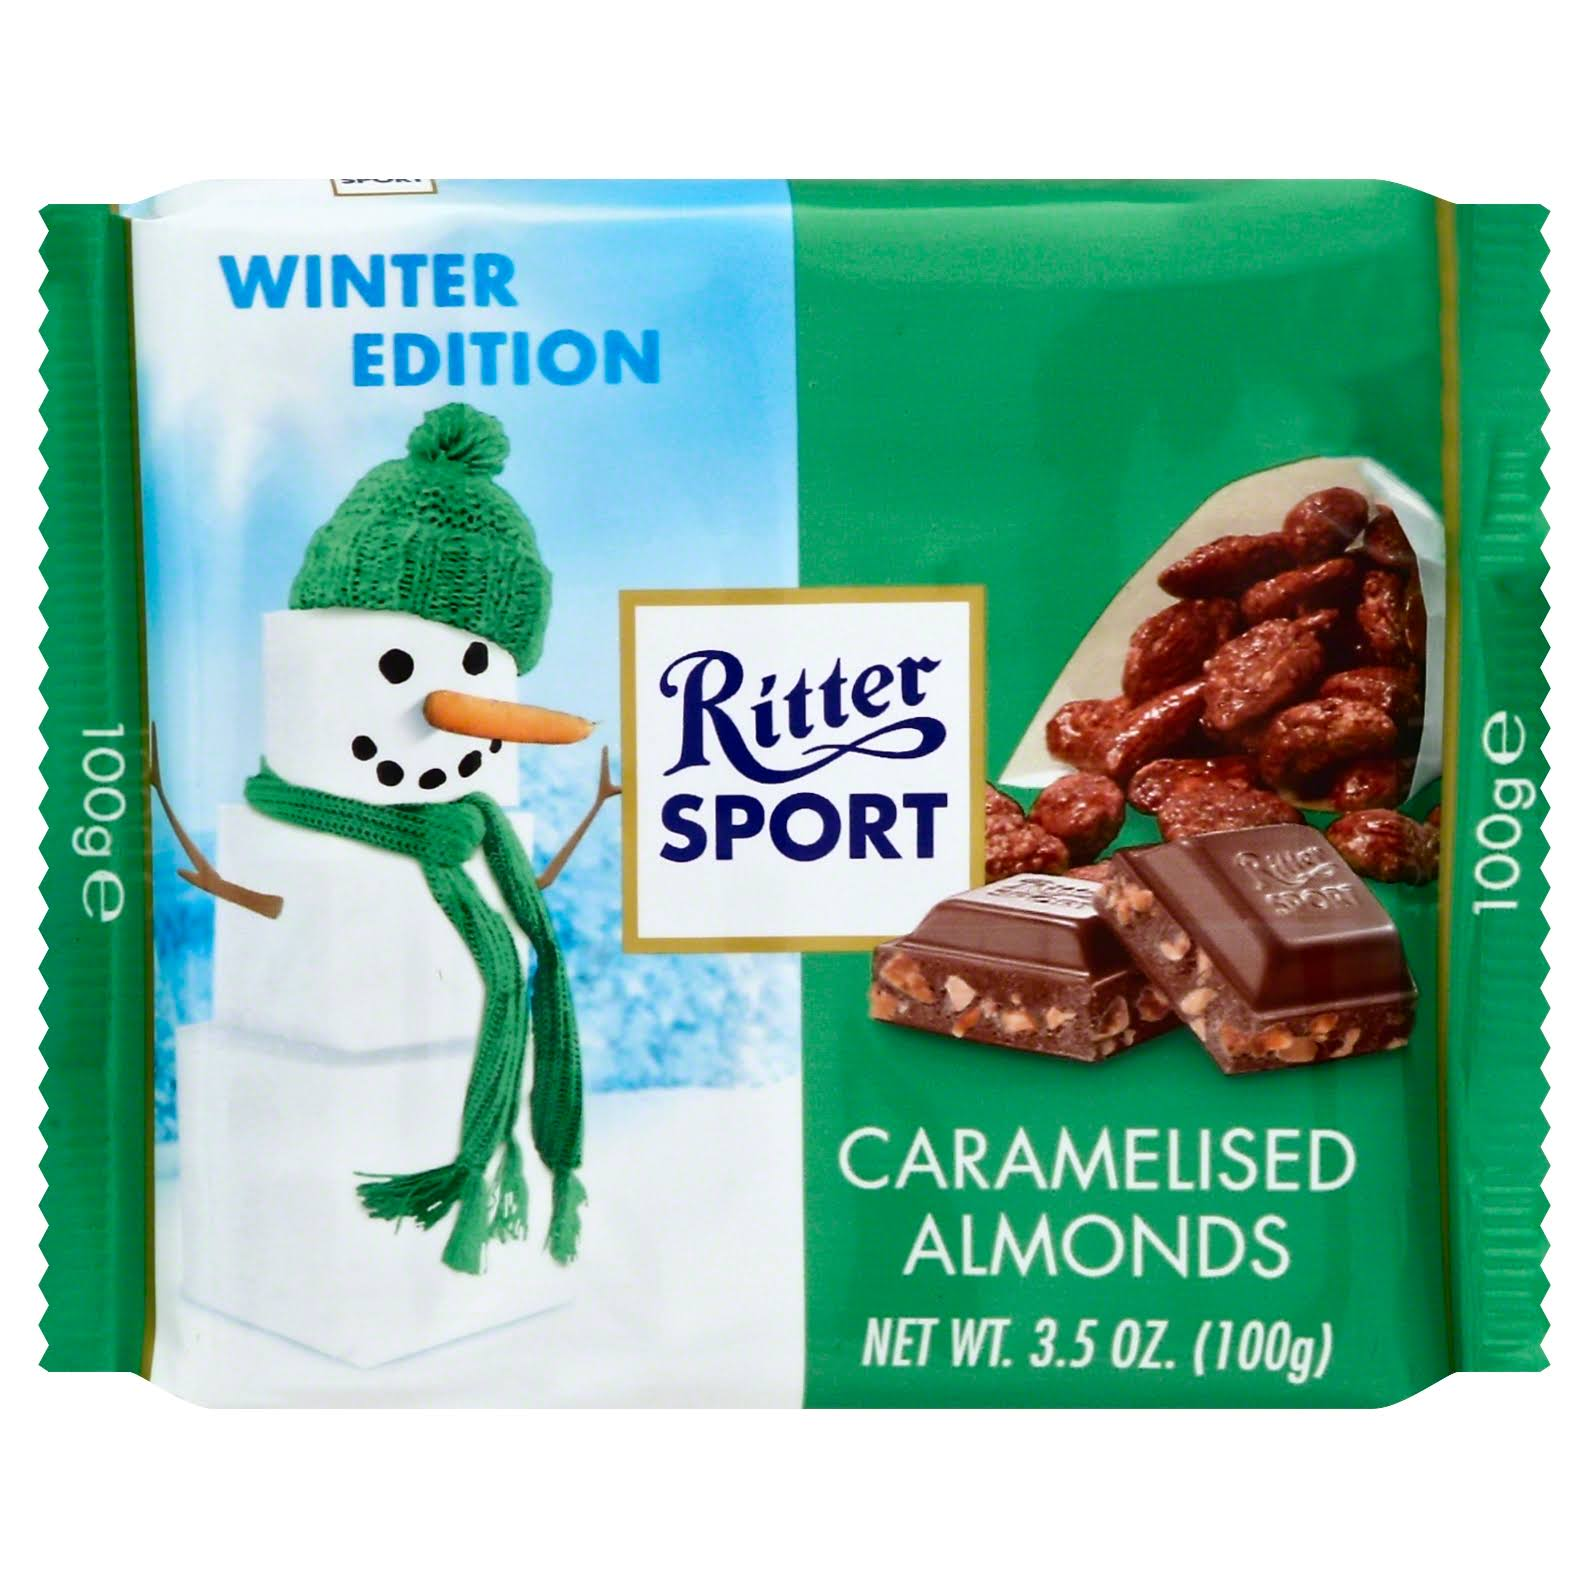 Ritter Sport Milk Chocolate with Caramelised Almonds - 3.5oz